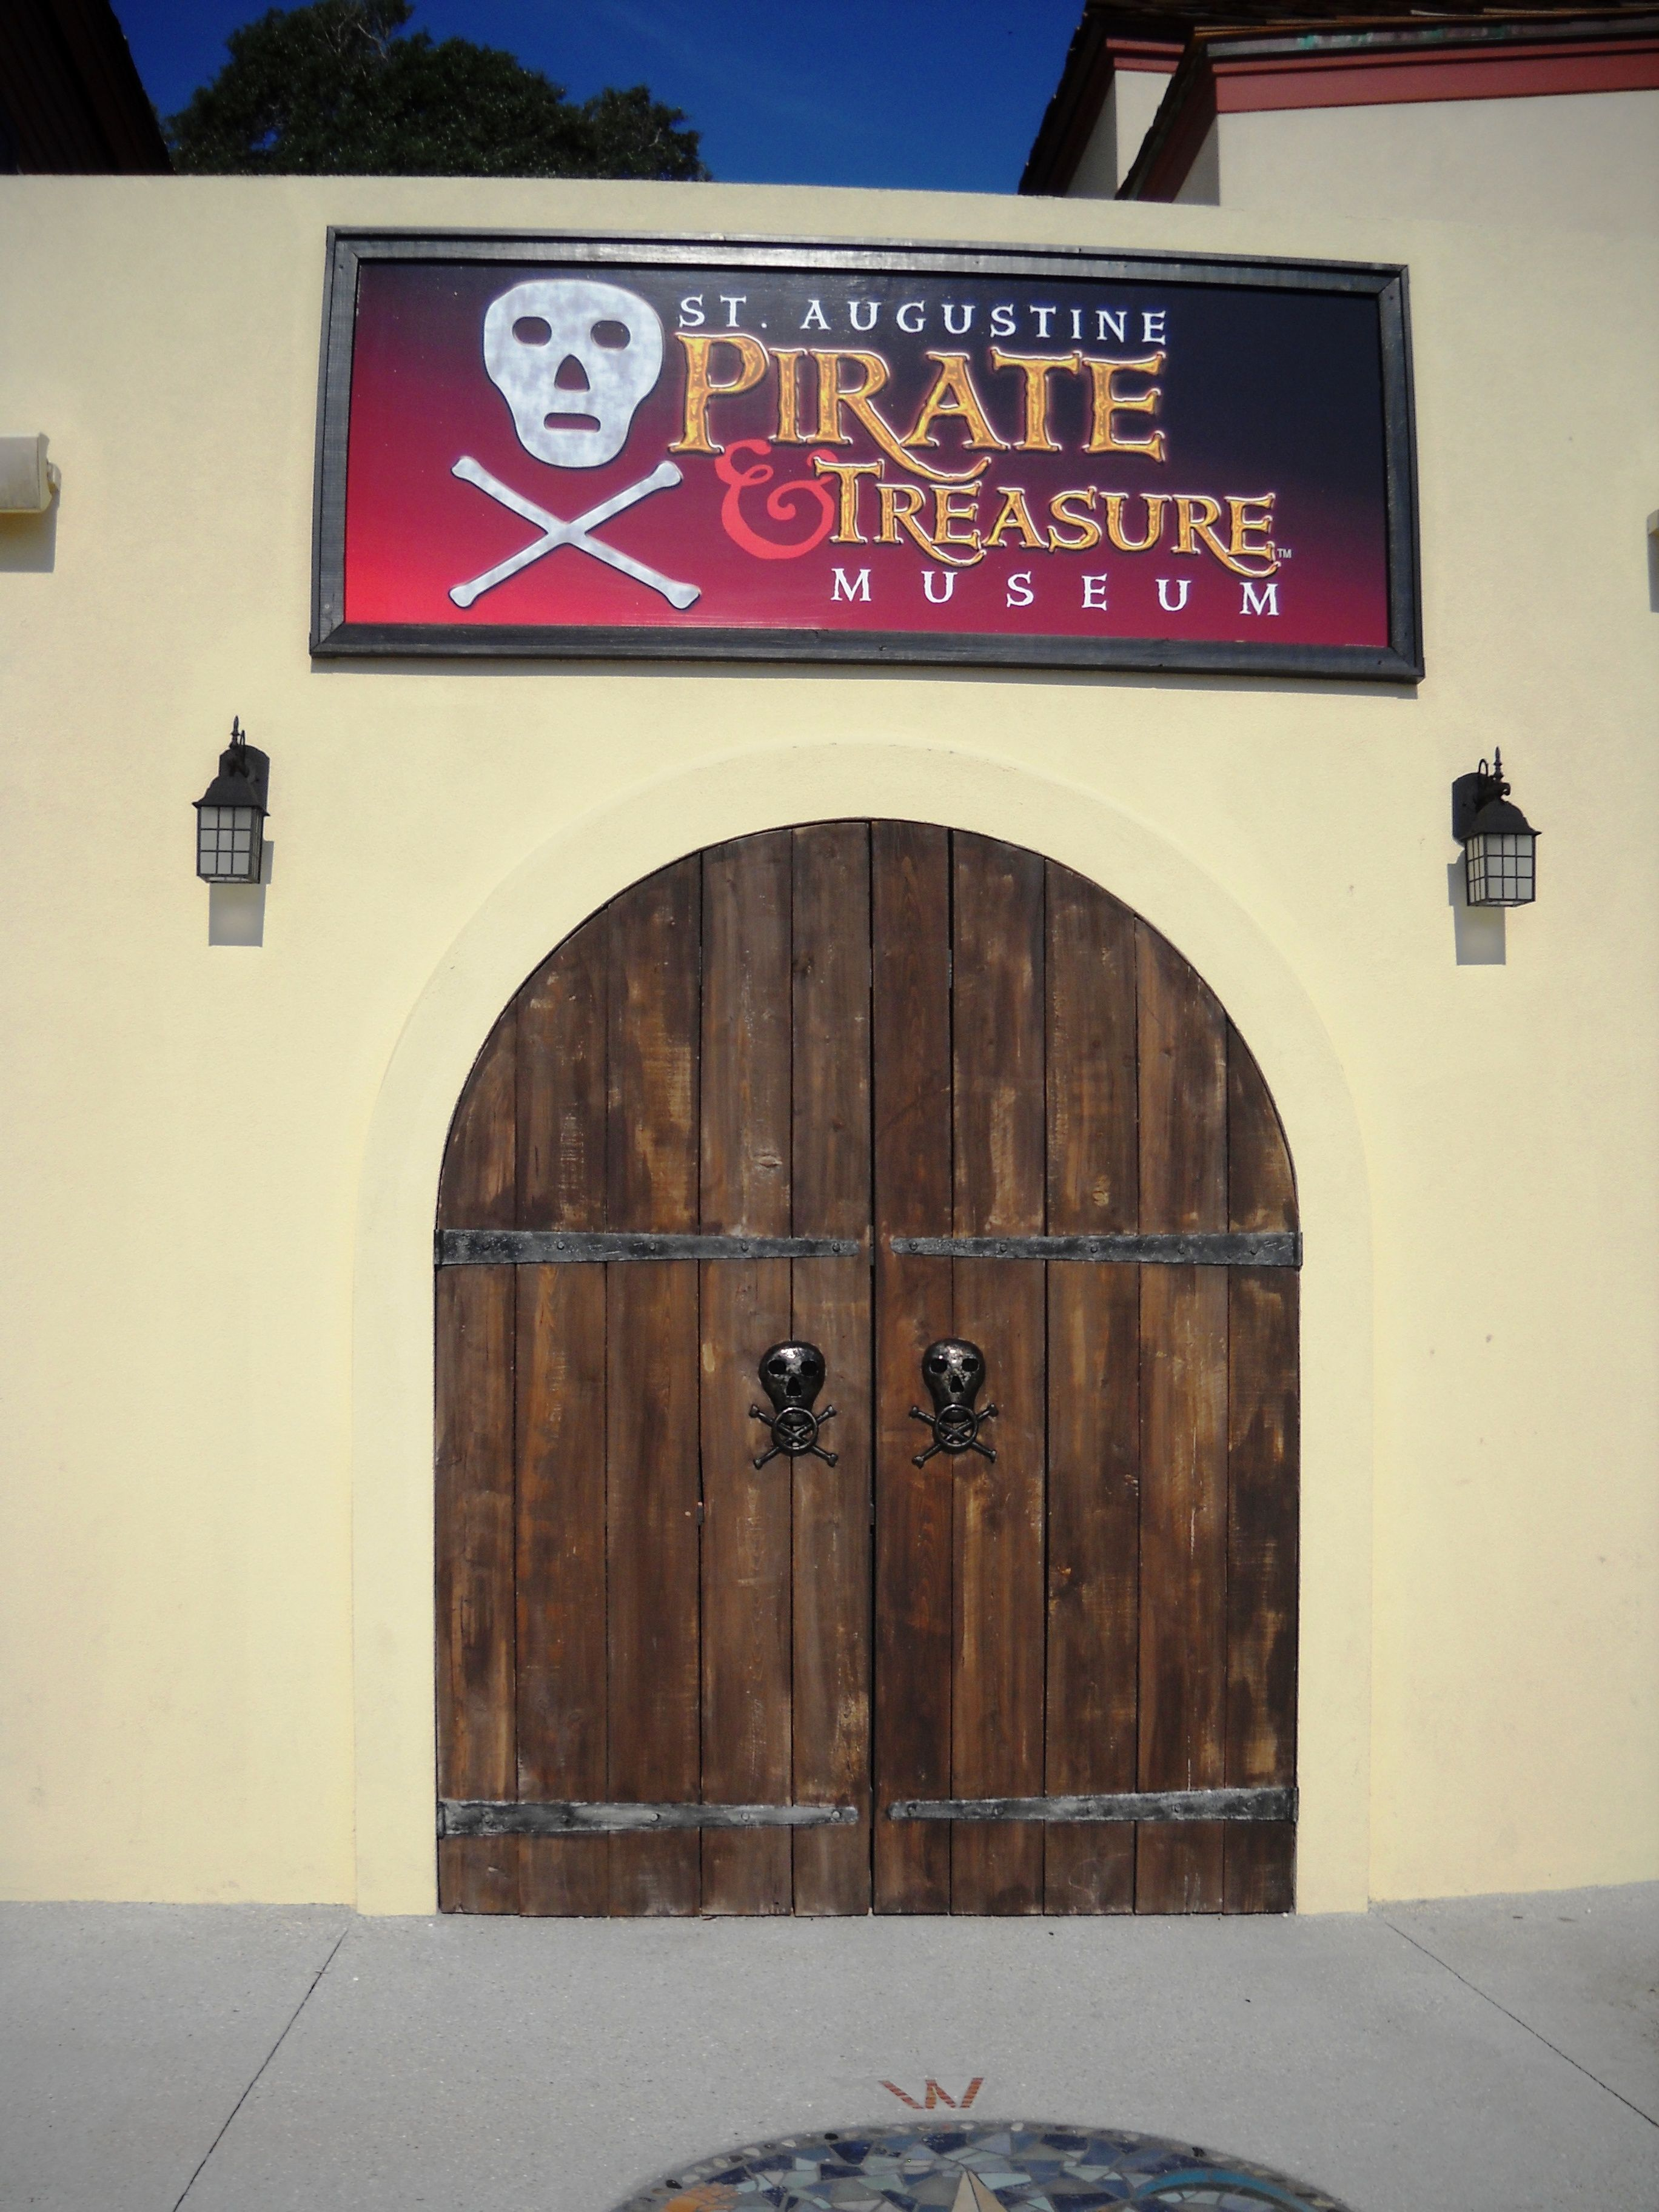 Pirate Museum In St Augustine FL My Travel Photos Pinterest - Pirate museums in the us